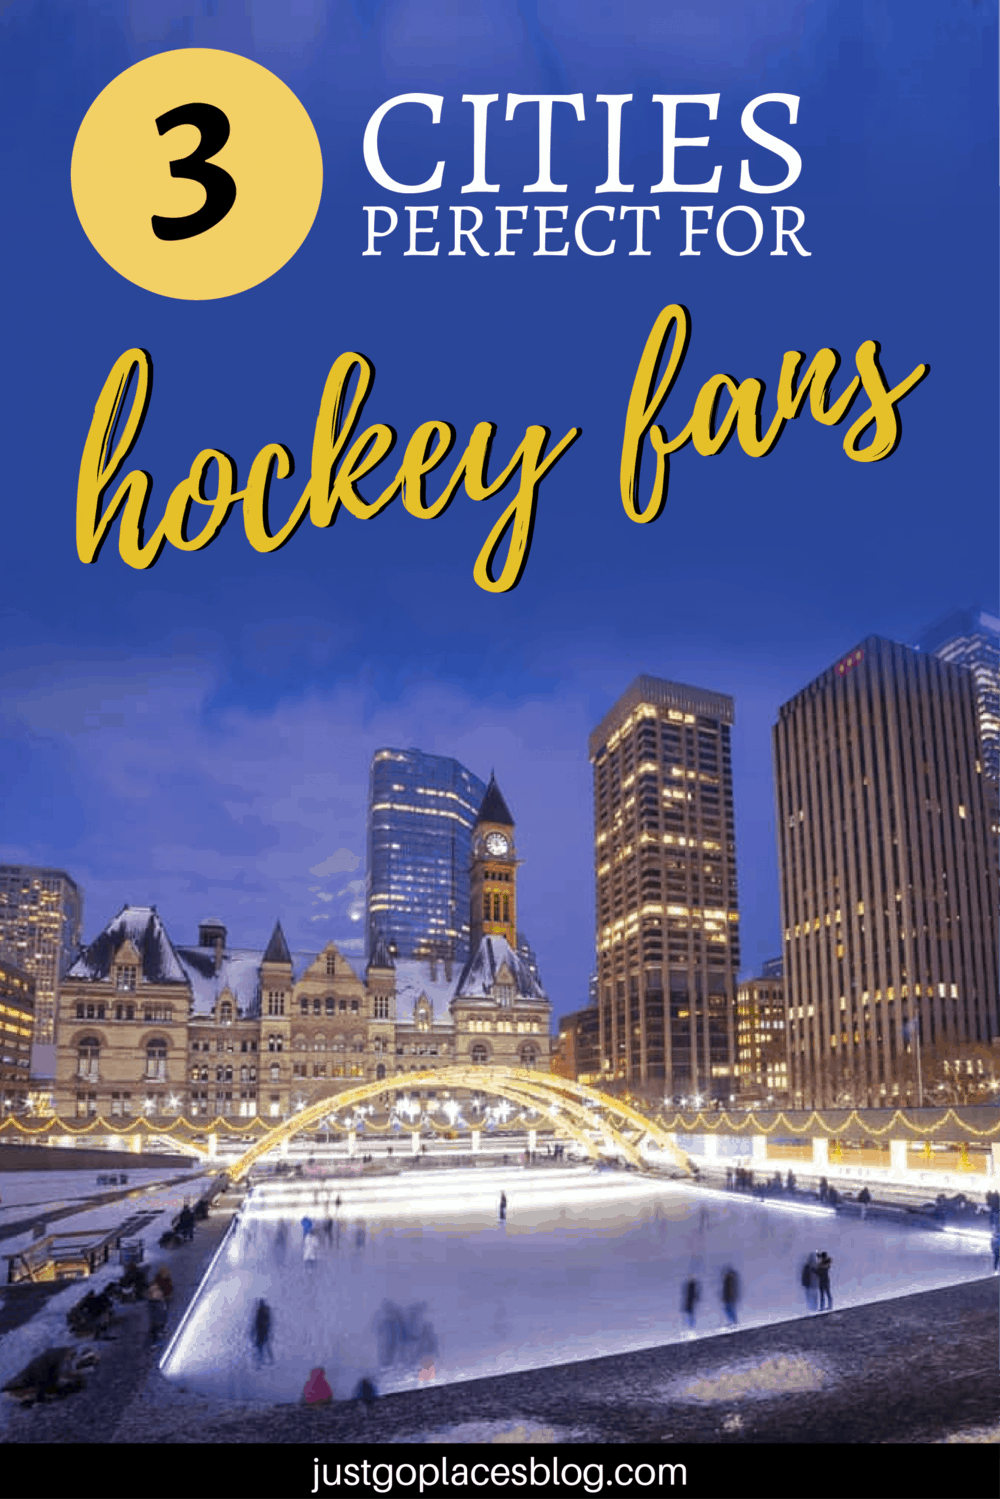 3 cities perfect for hockey fans